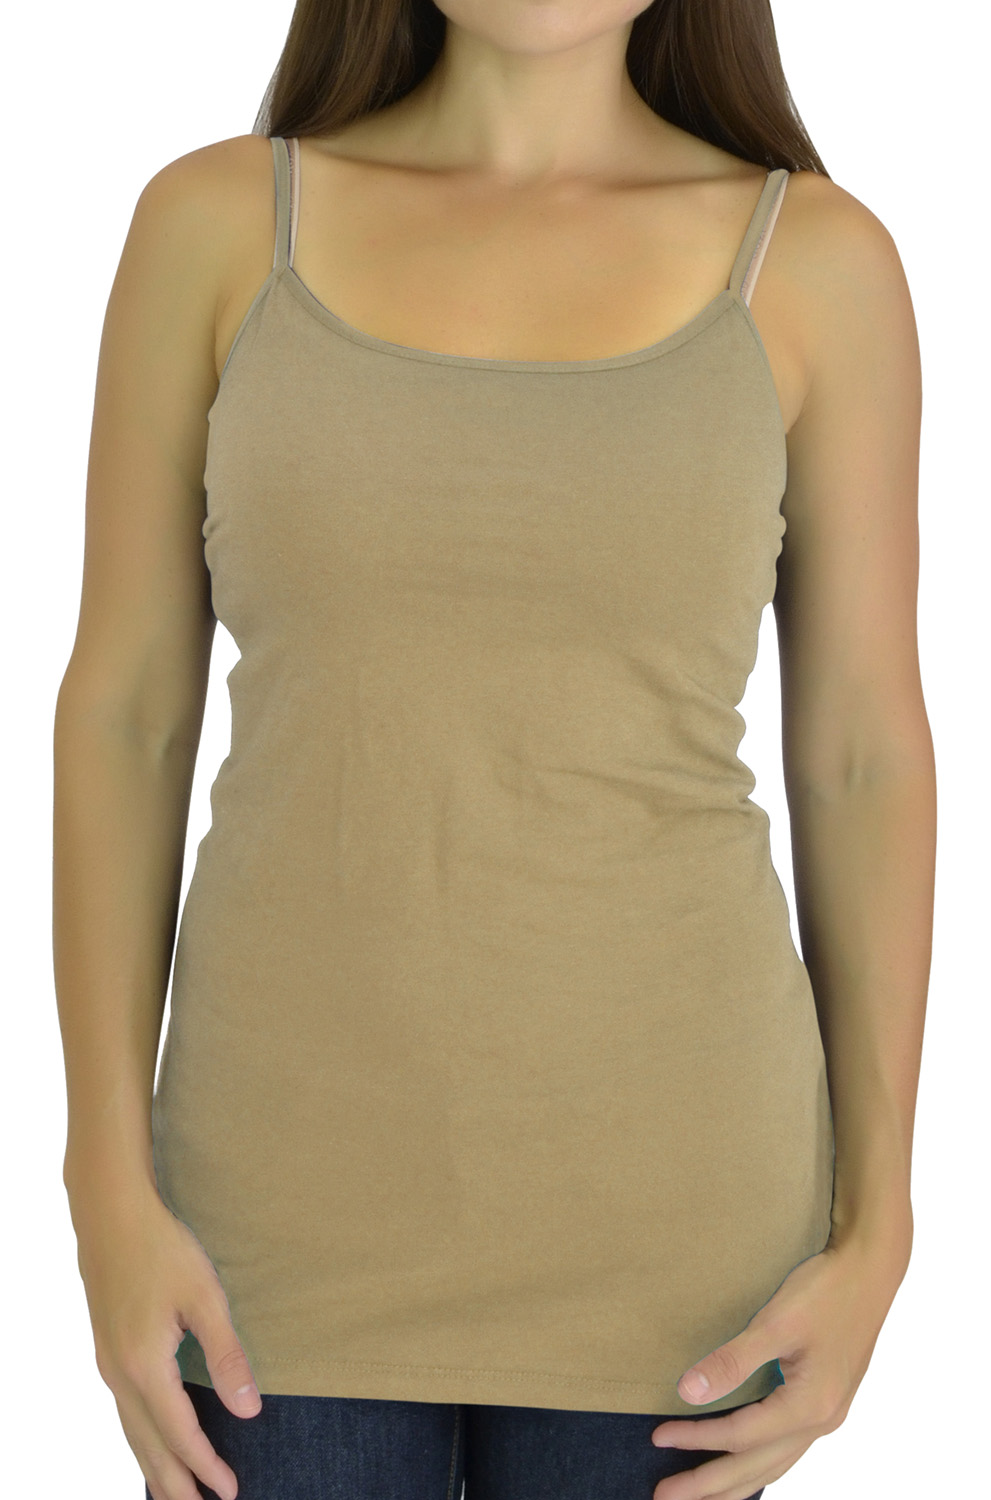 Belle Donne Tanktop for Women Extra Long Cami Tank Top with Built in Shelf Bra Cotton - Taupe Small